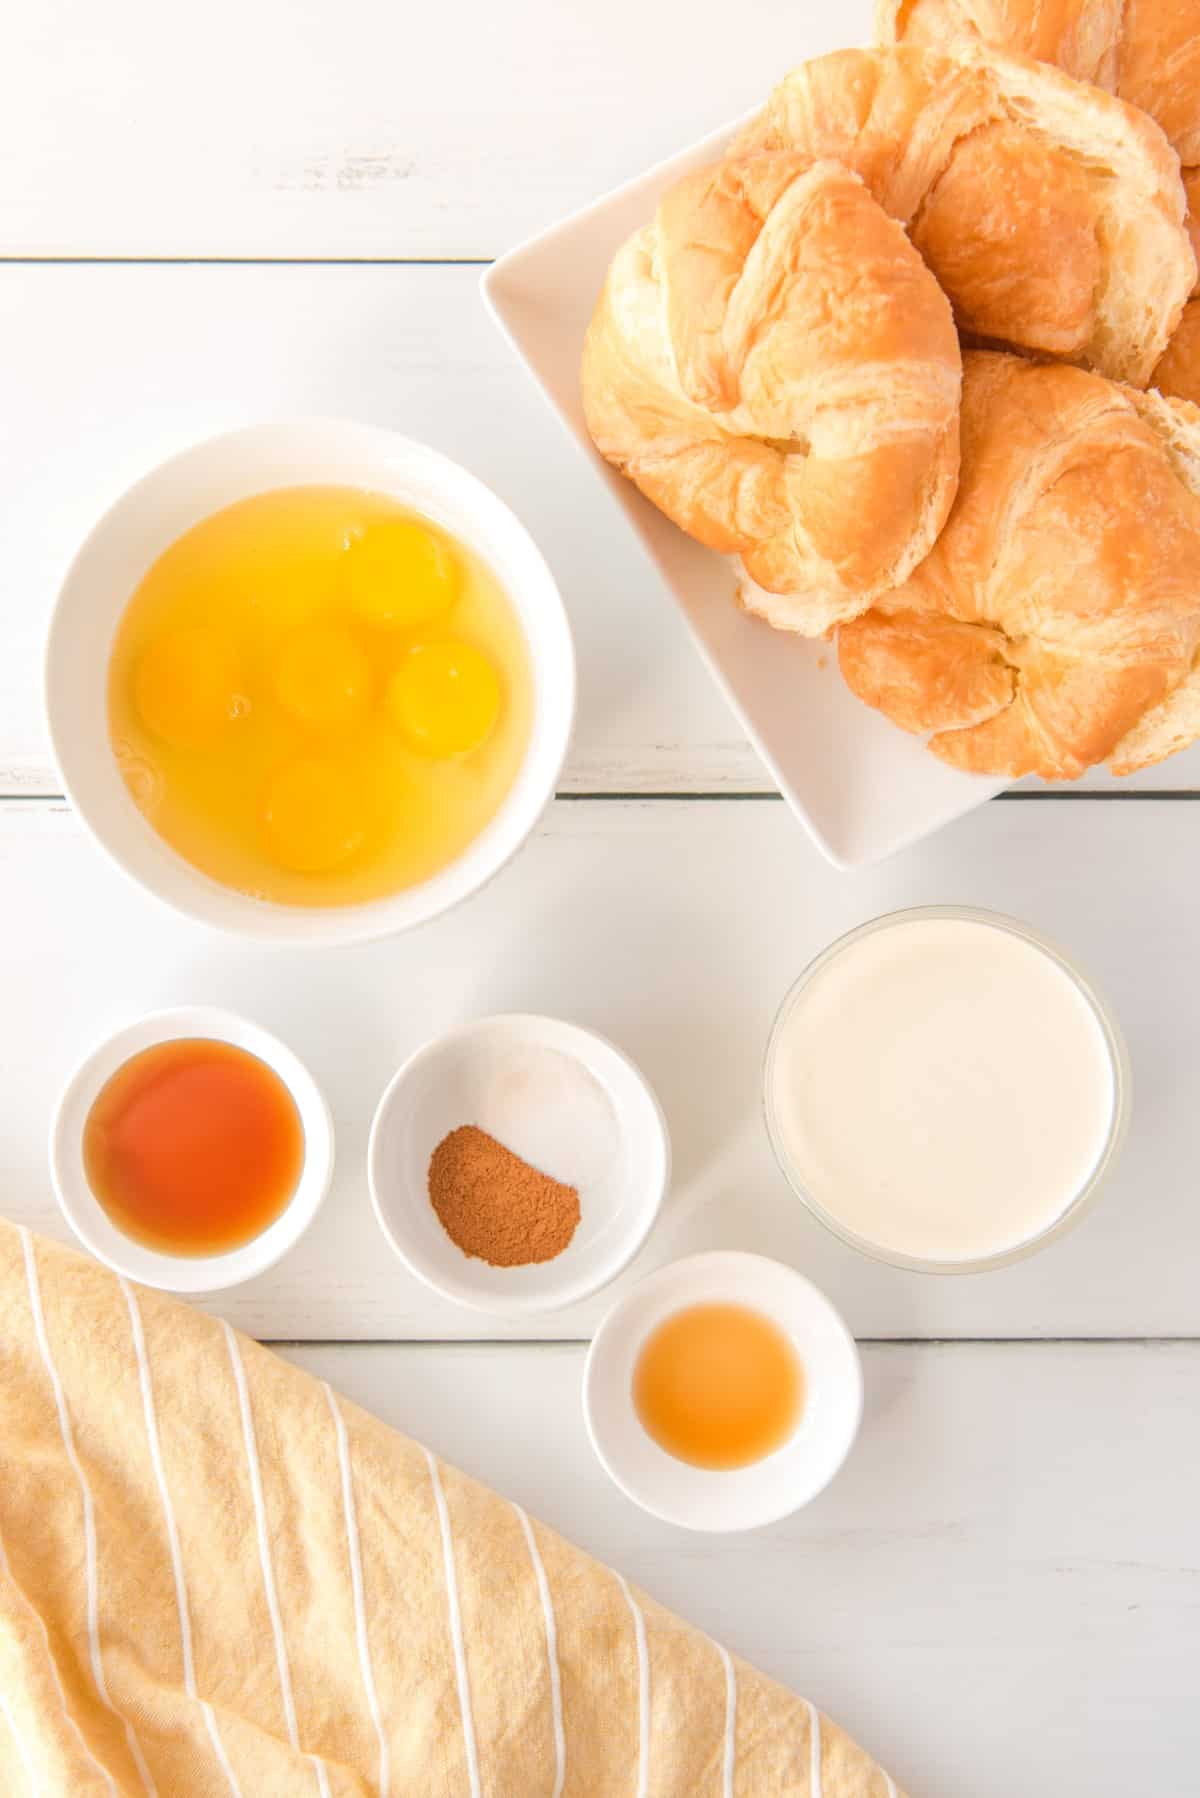 Ingredients for Croissant French Toast Bake